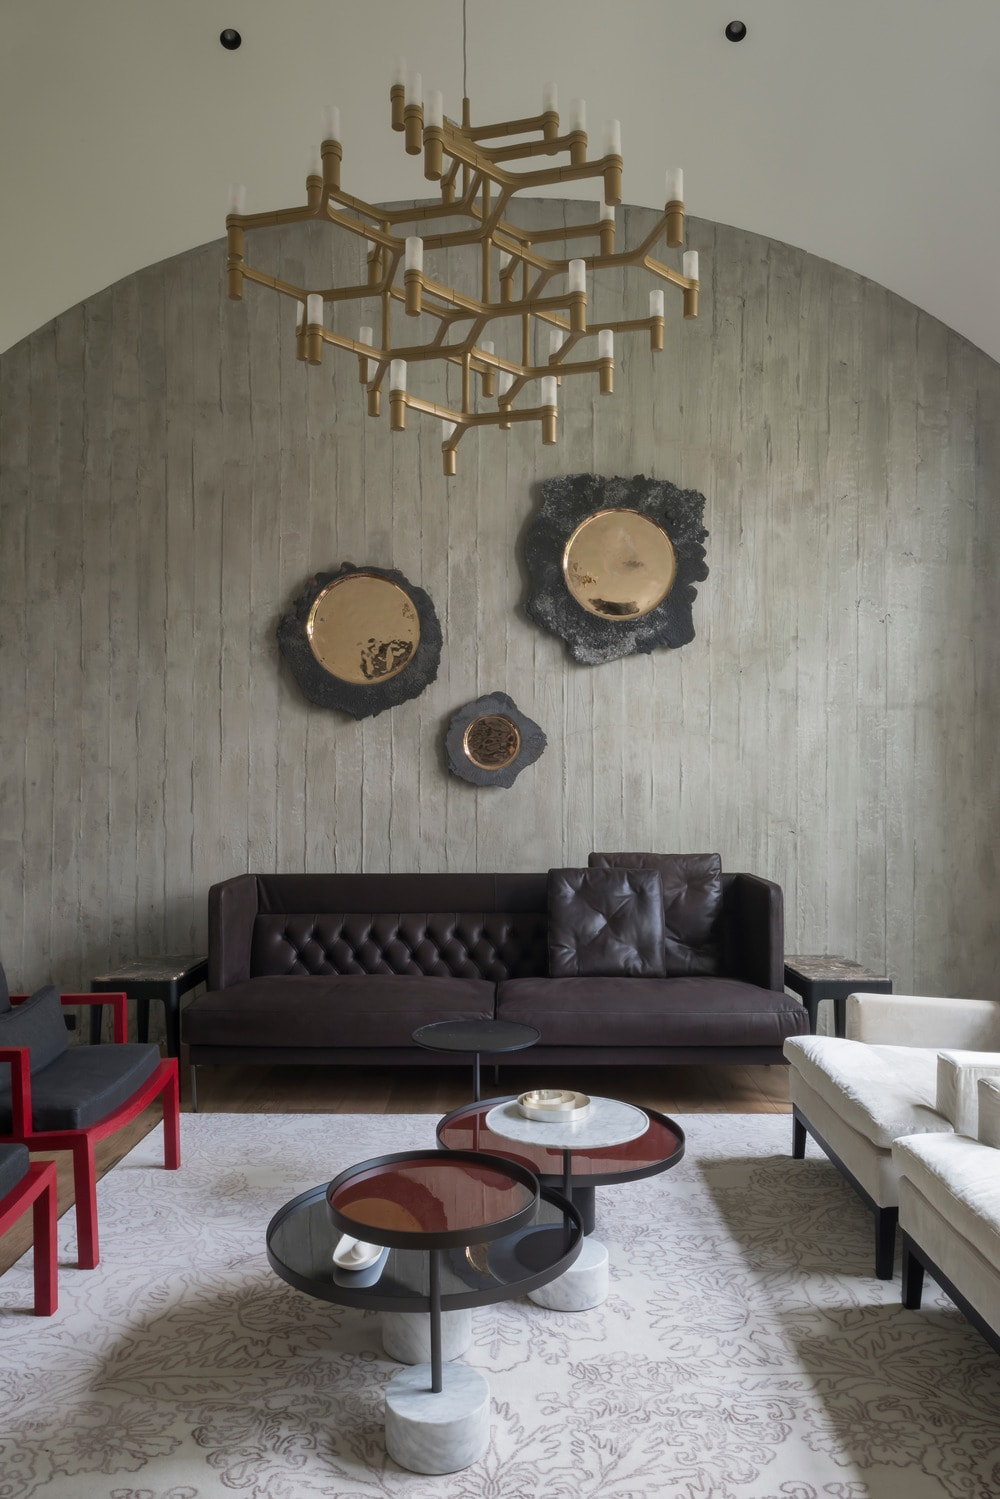 This is the living room that has a cove ceiling and a decorative lighting above the coffee tables that are surrounded by black and white sofas and armchairs.